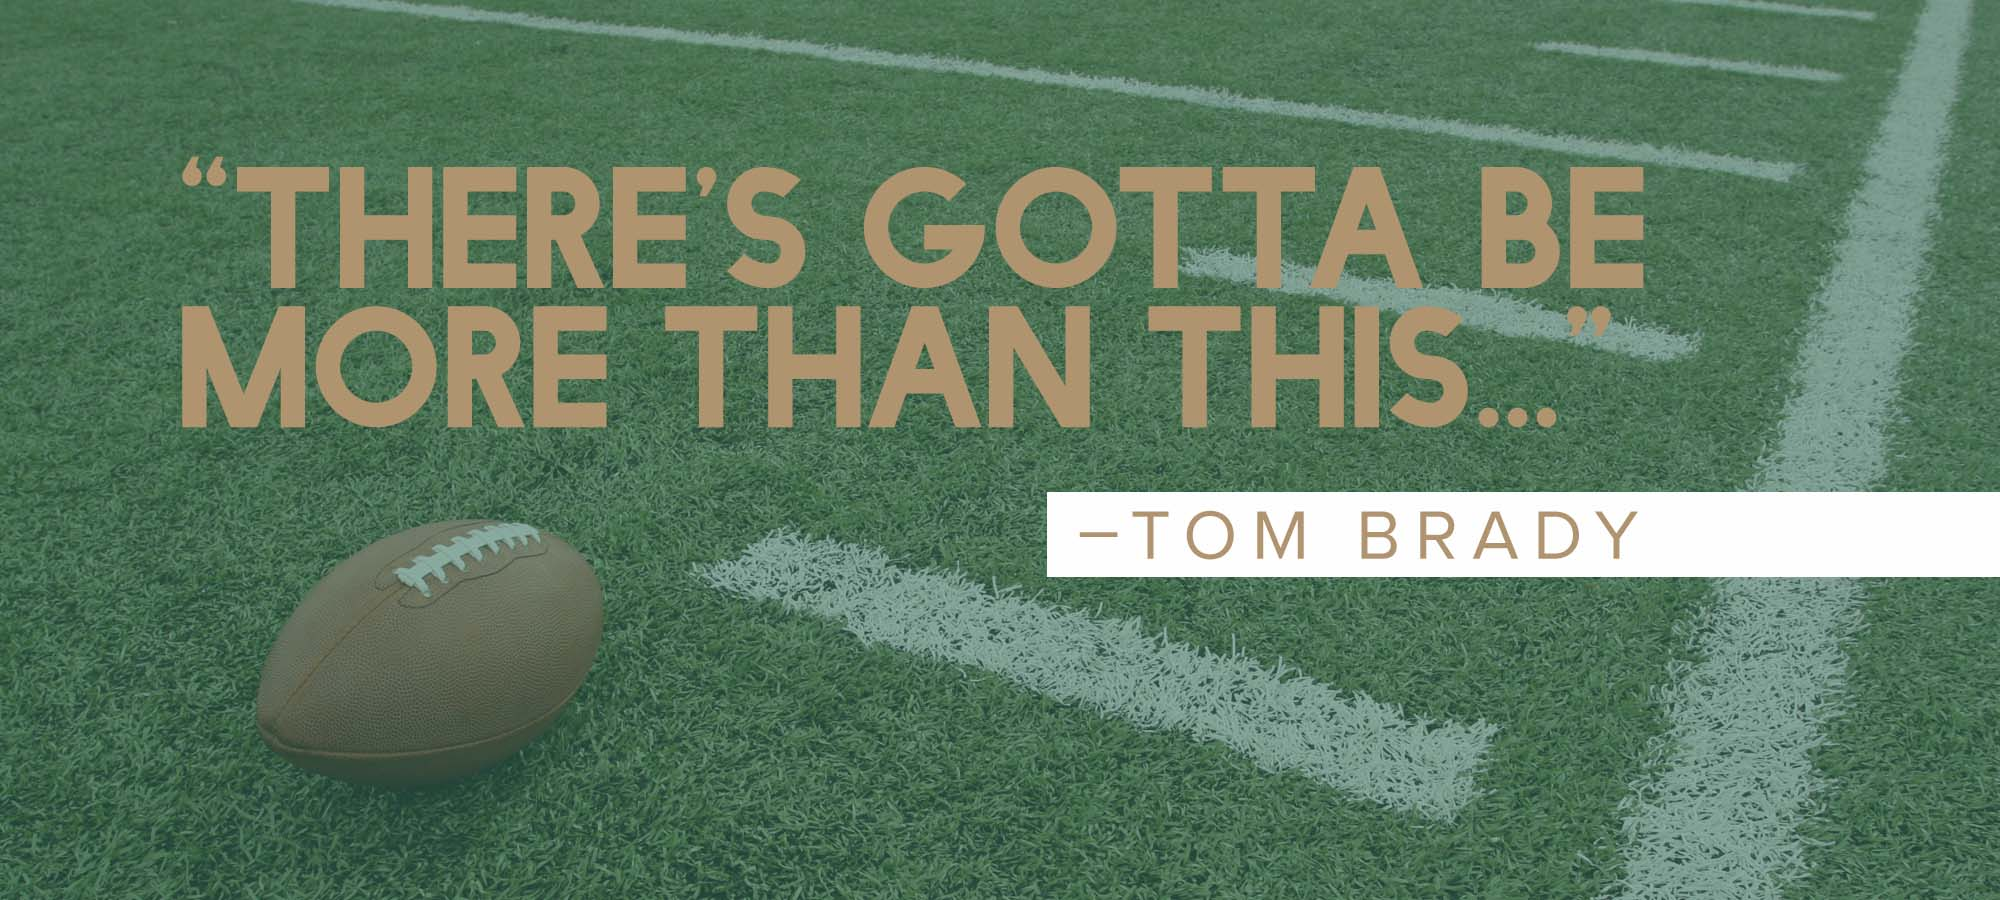 """There's Gotta Be More Than This…""- Tom Brady"